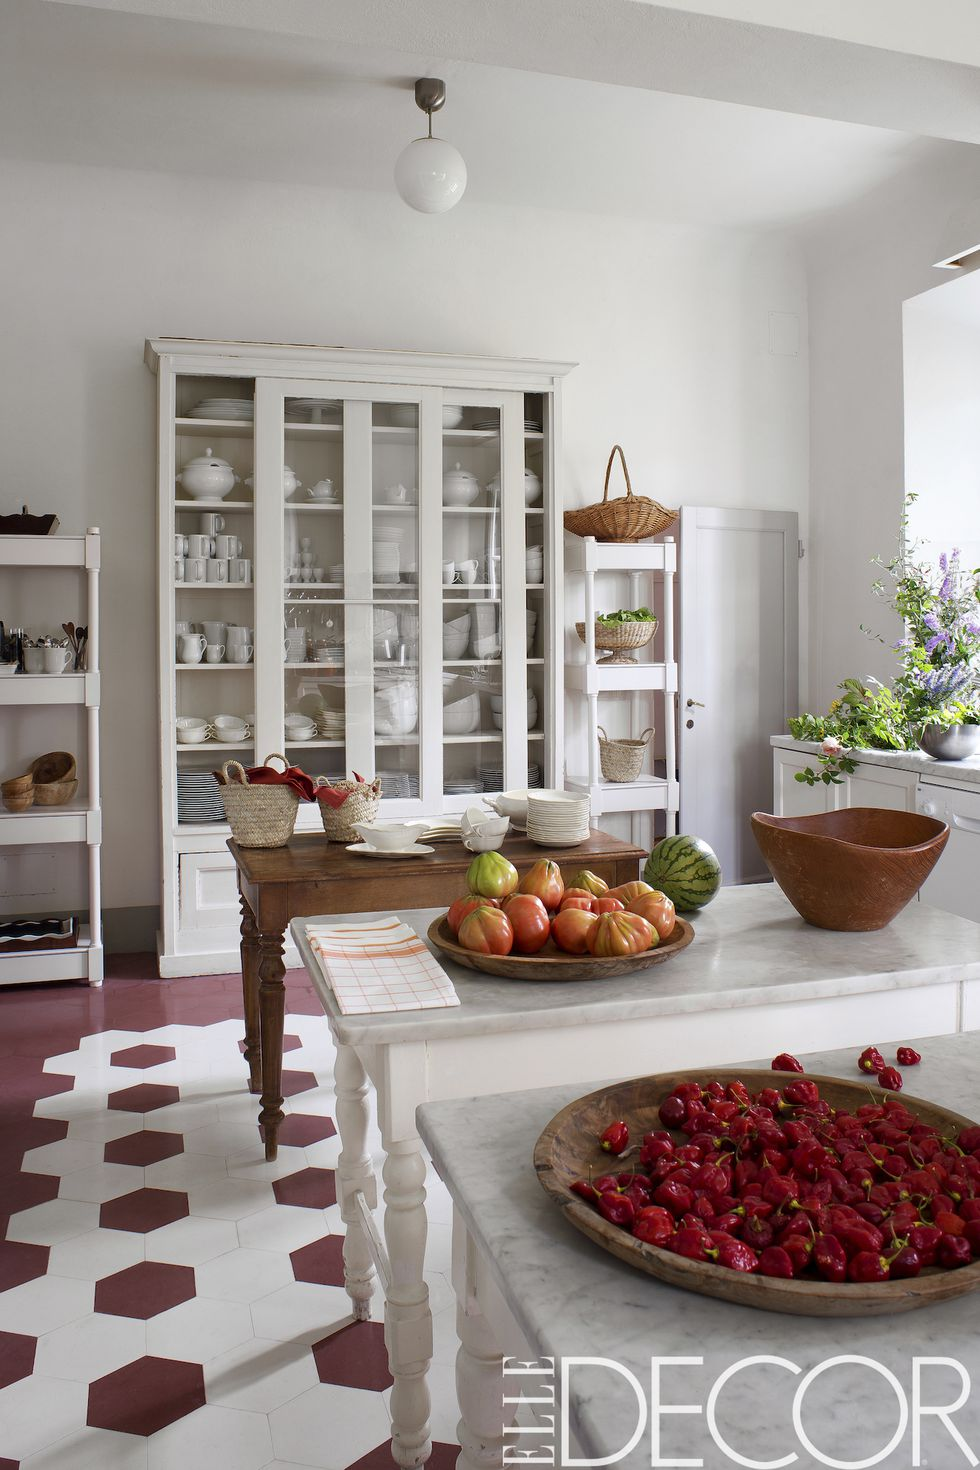 florence-estate-kitchen-1489515485.jpg